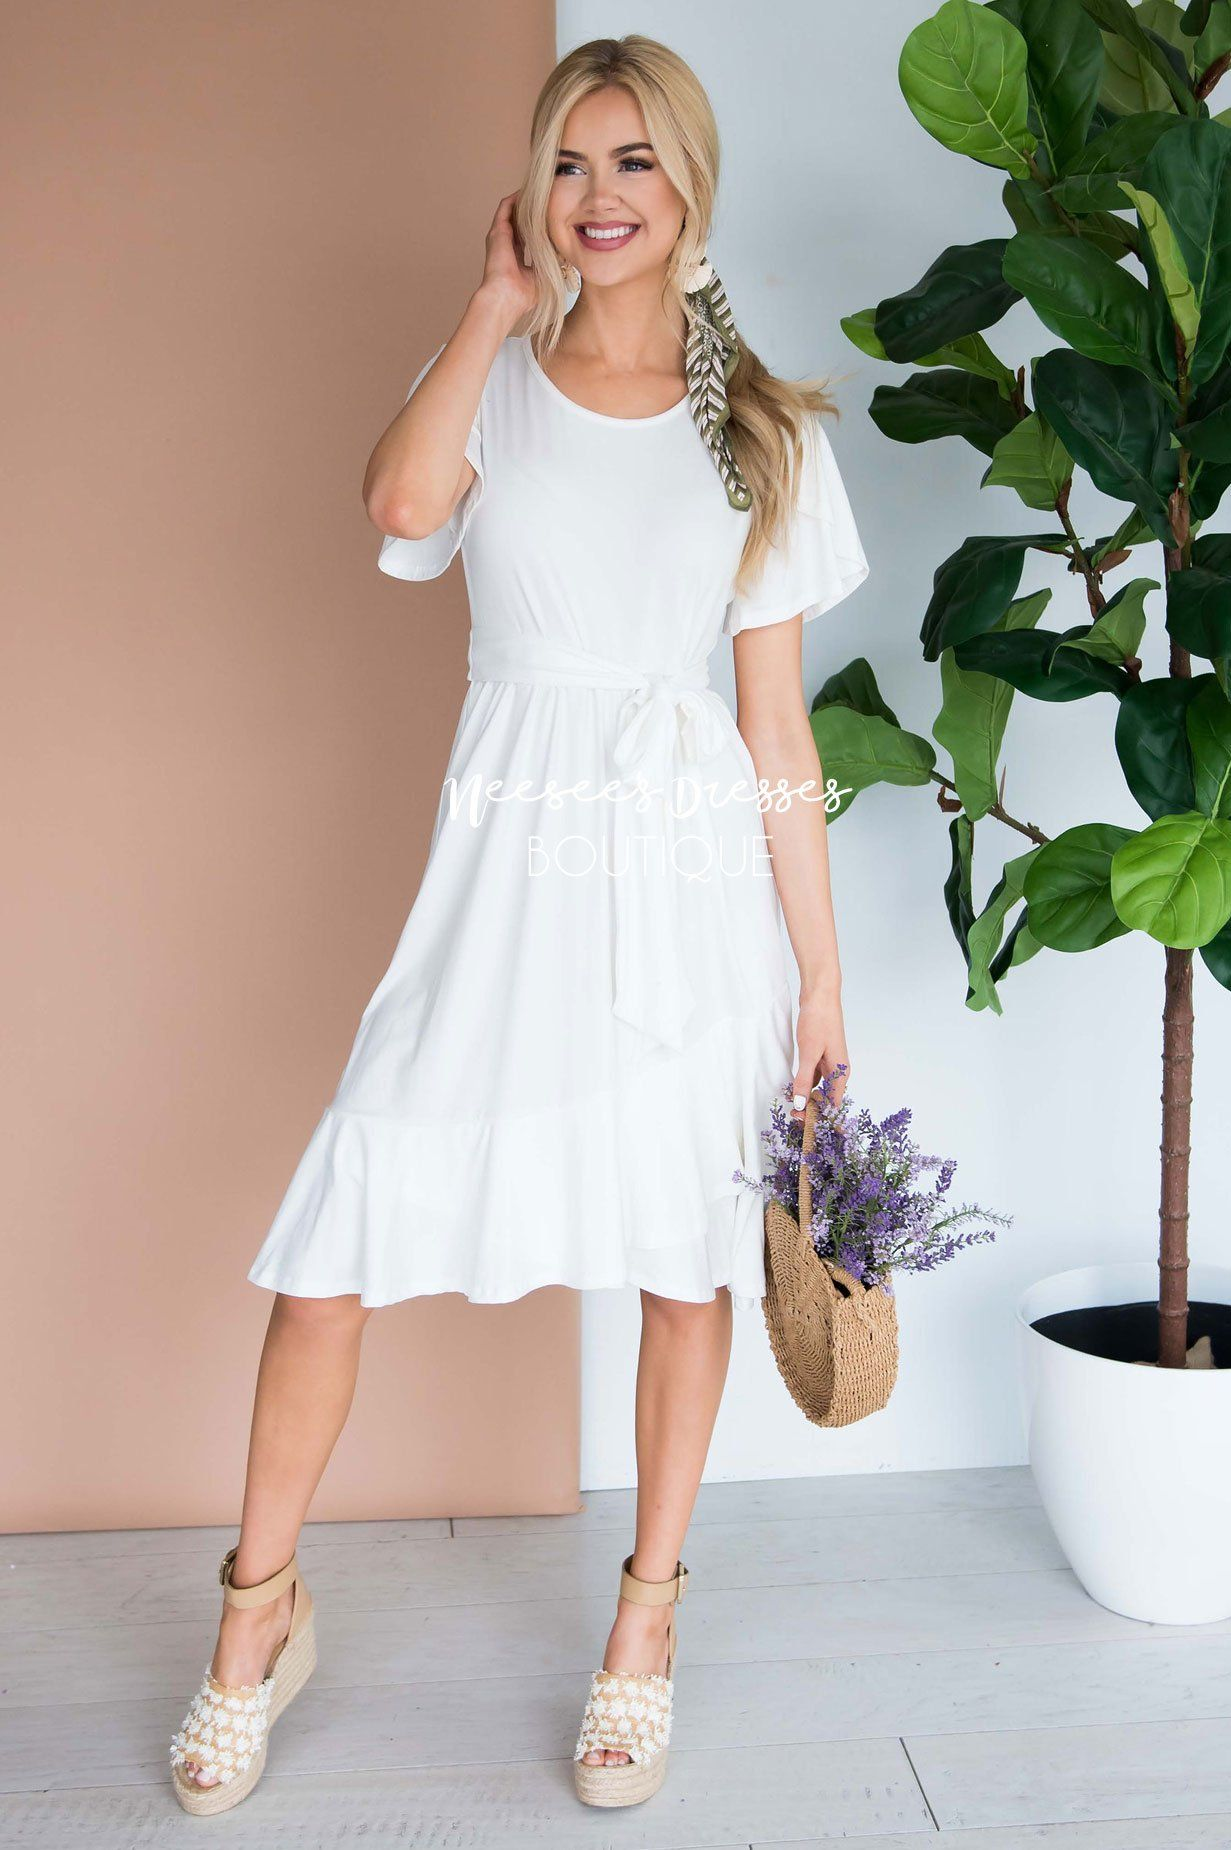 White Tulip Sleeve Ruffle Dress Best Place To Buy Modest Dress Online Modest Dresses And Skirts For Church Neese Modest Dresses White Short Dress Dresses [ 1850 x 1231 Pixel ]